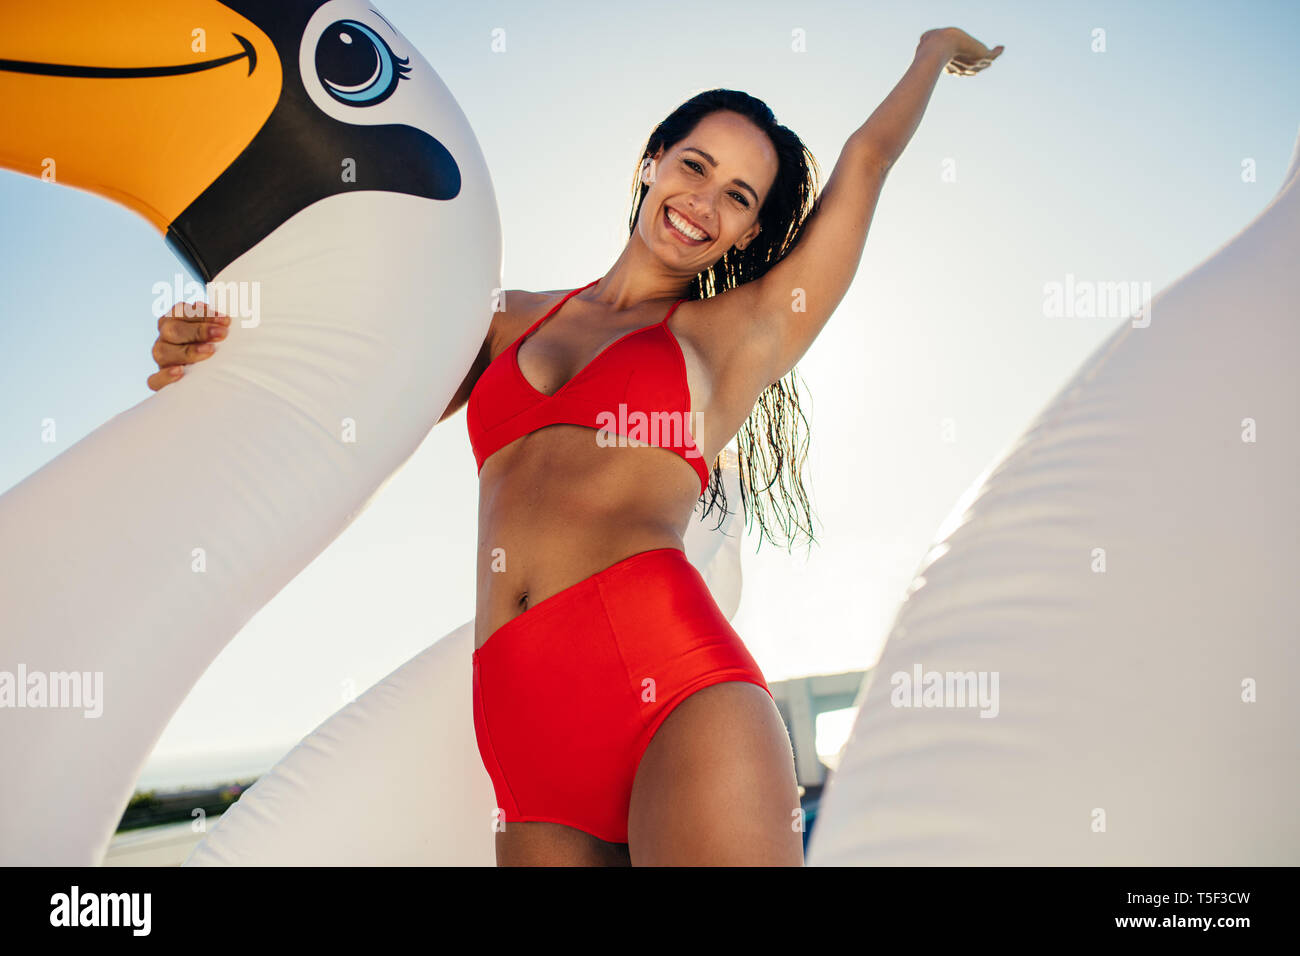 Young woman in bikini on inflatable pool toy and having fun. Caucasian female enjoying summer vacation in a swimming pool. - Stock Image